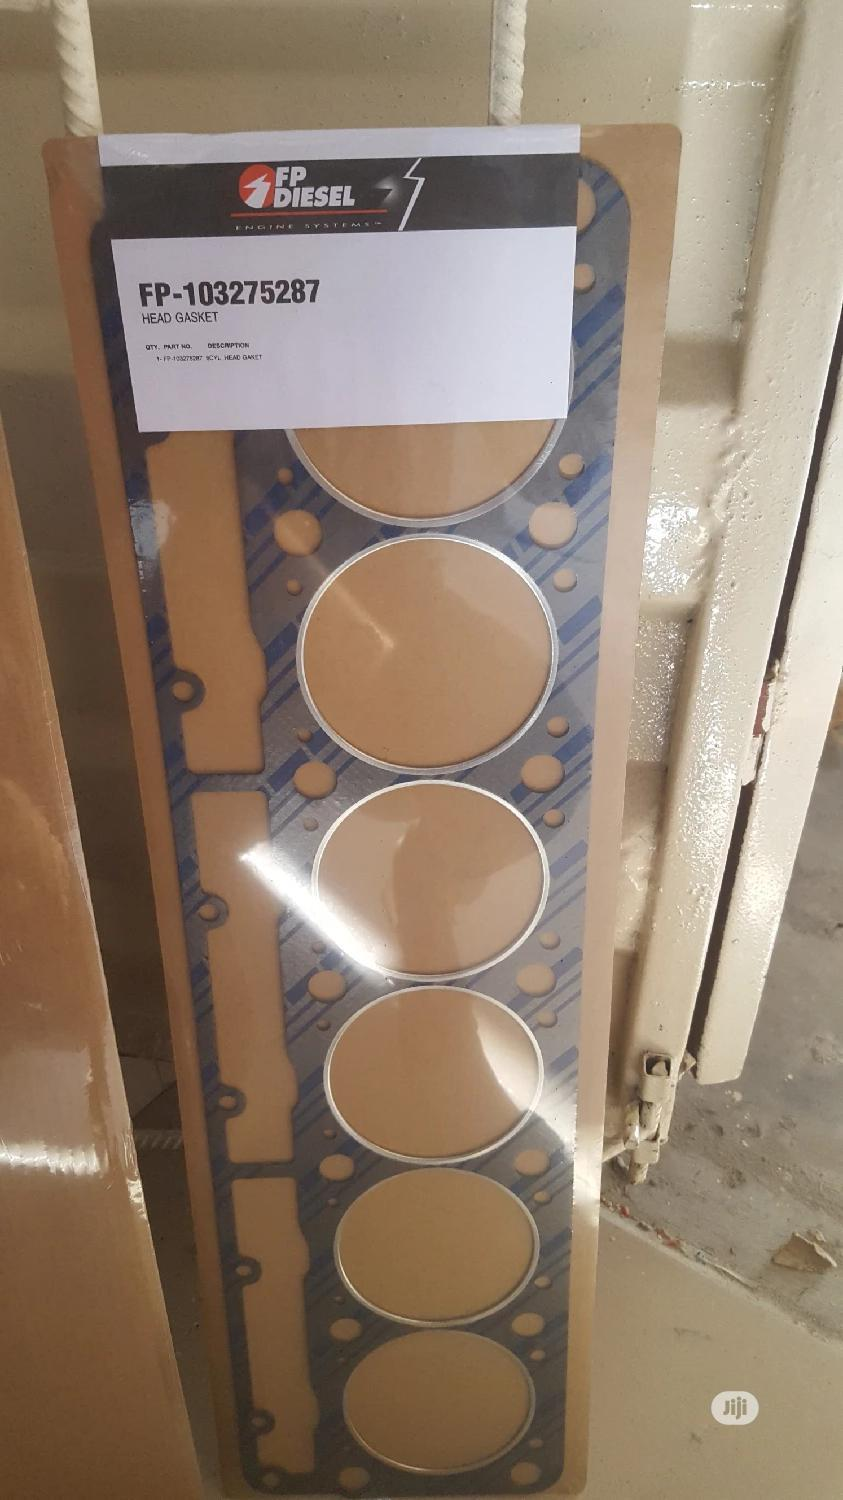 Top Gasket Part 103275287 (Fp) For All Caterpillar. Lagos